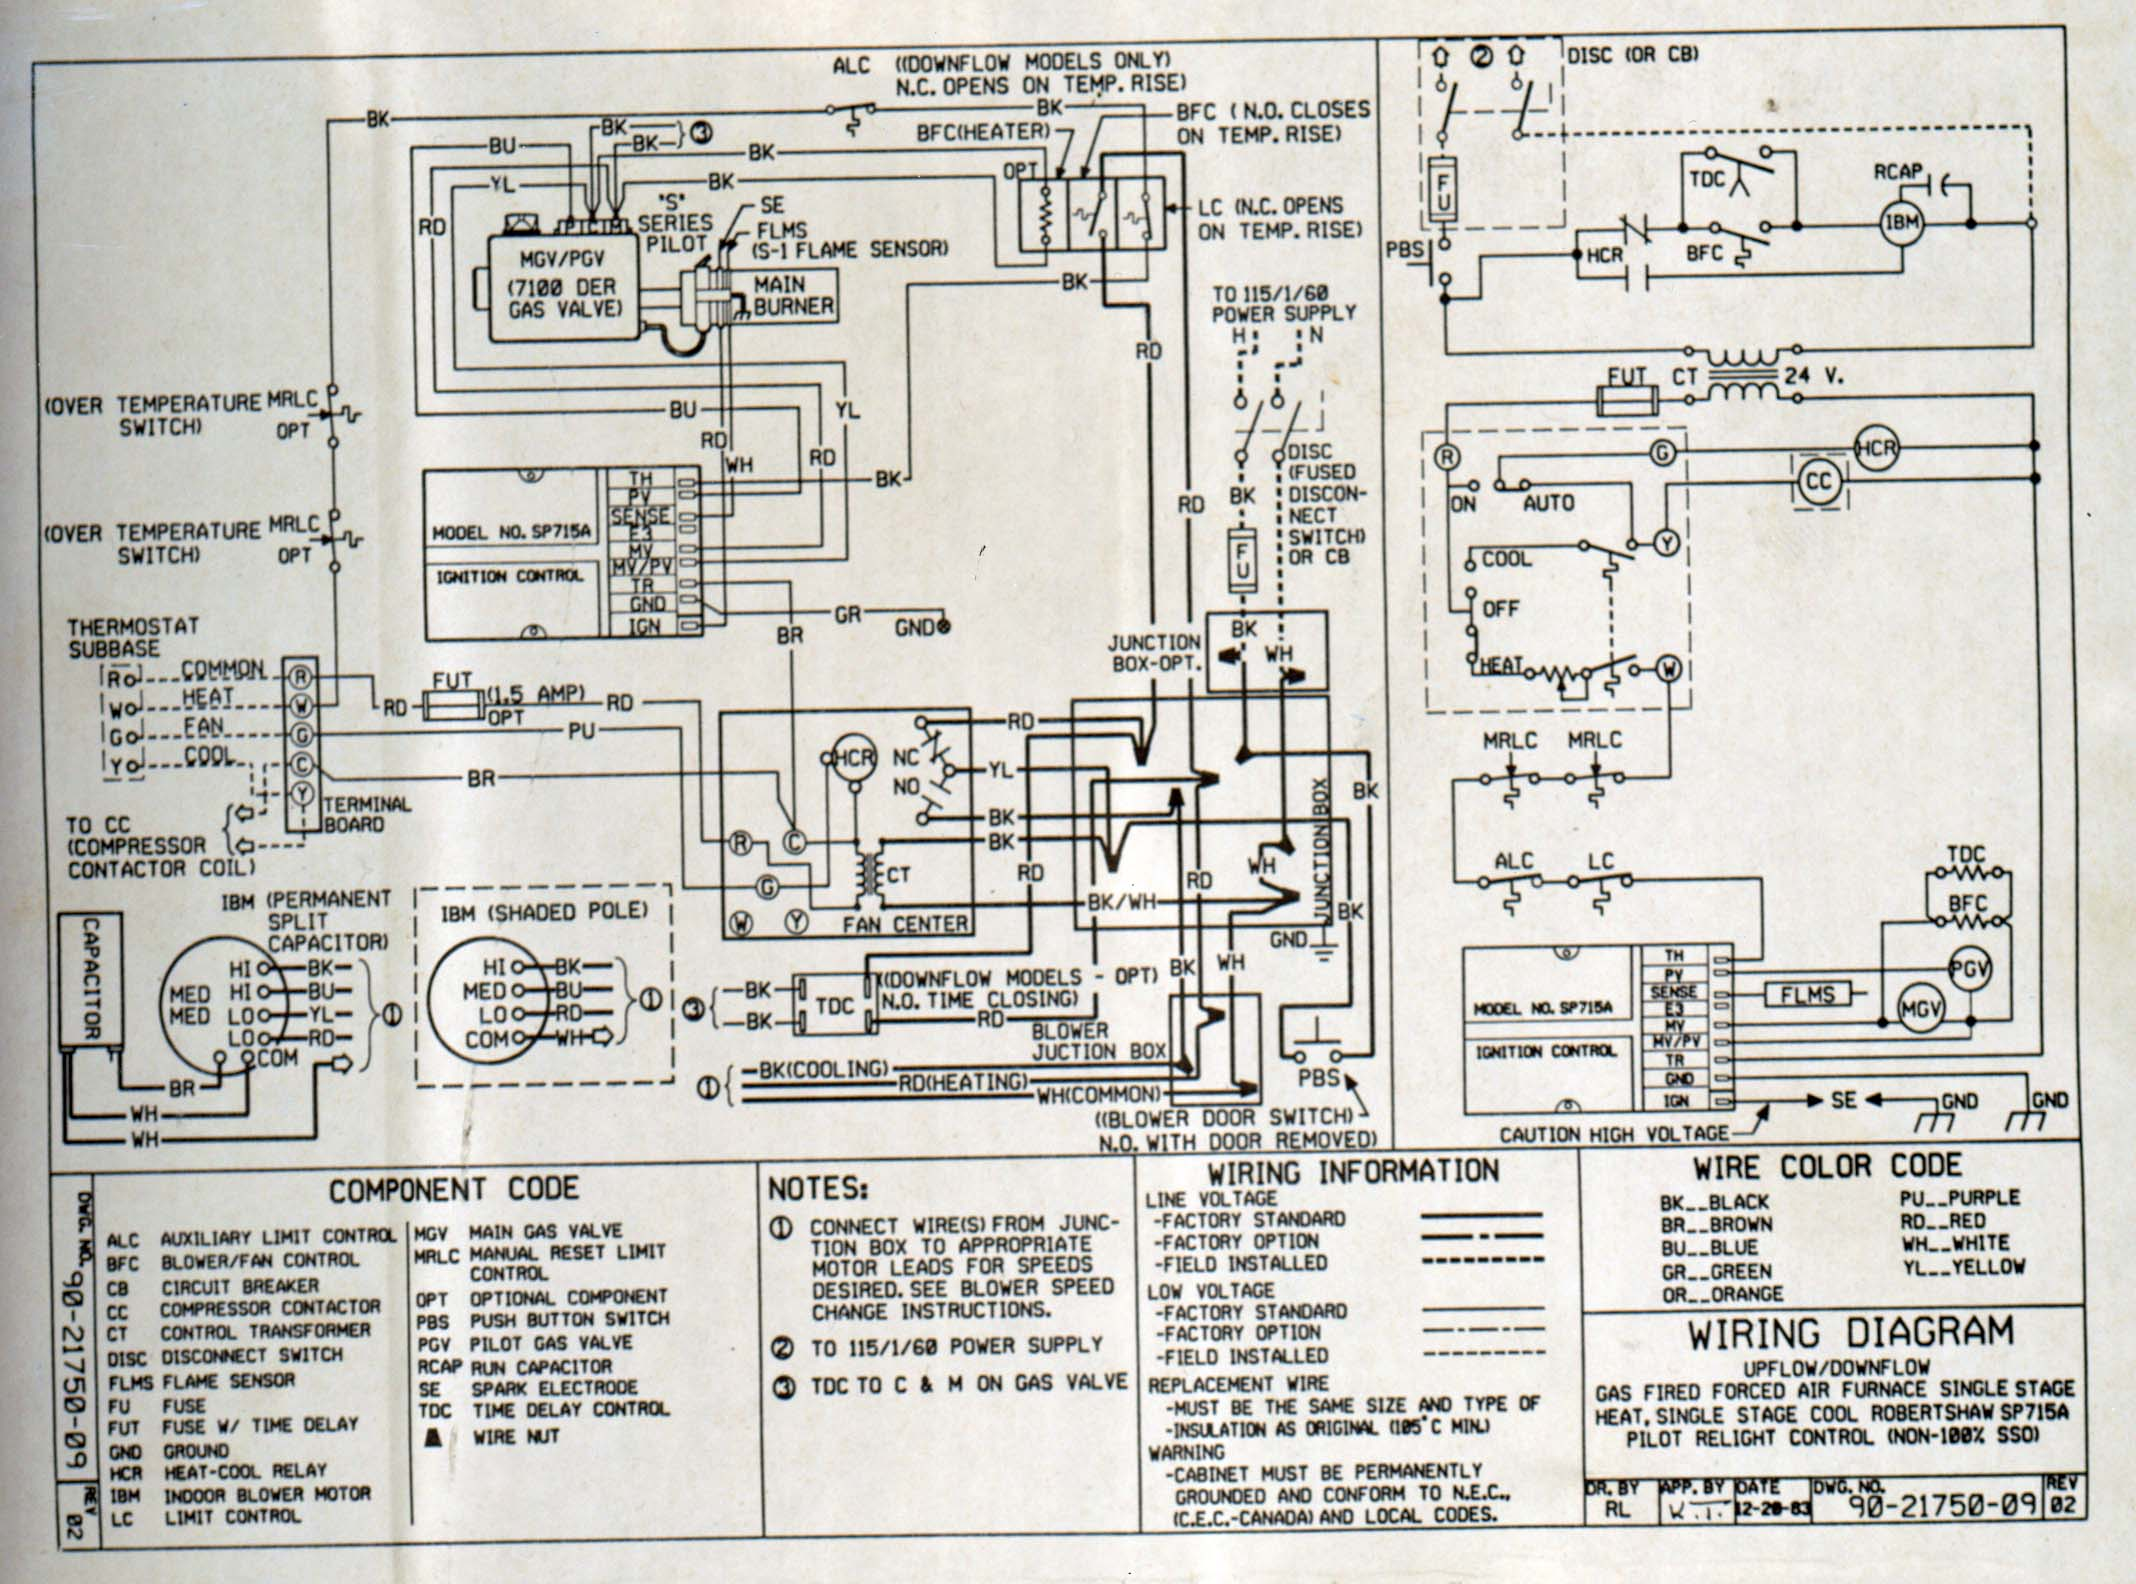 wiring diagram goodman heat pump the wiring diagram amana heat pump wiring diagram vidim wiring diagram wiring diagram